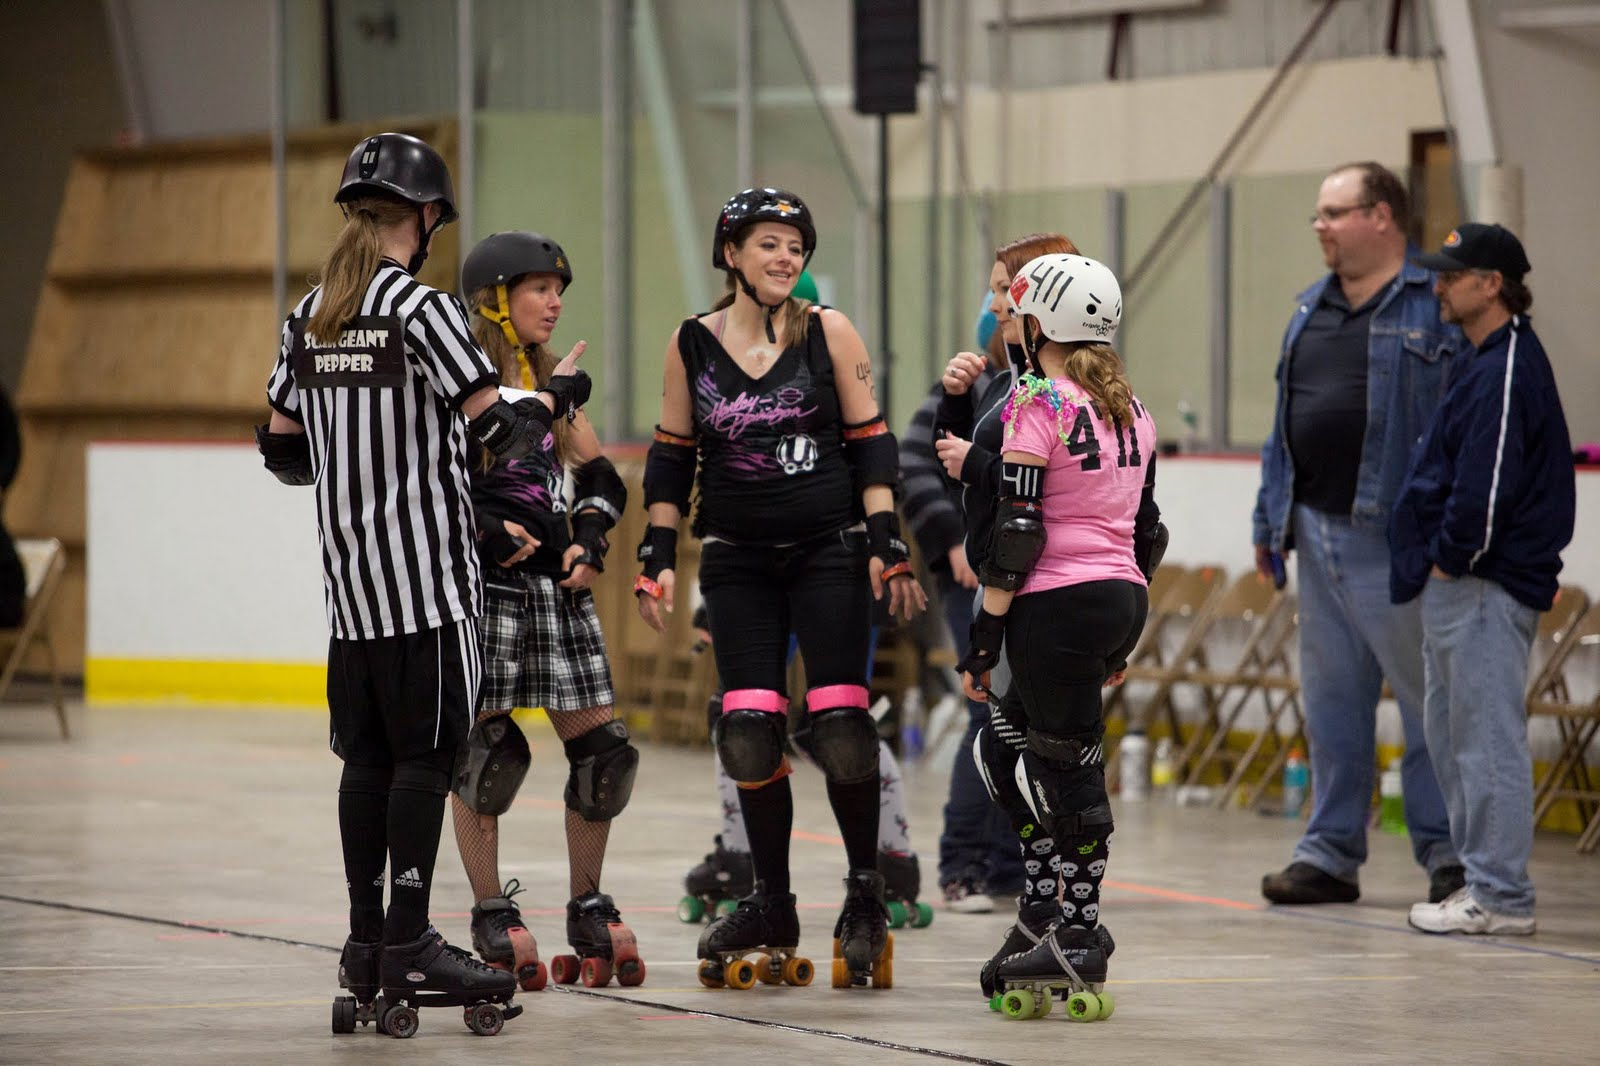 Roller skating rink westchester ny - Captains Meeting Photo By Janelle Rodriguez Photography